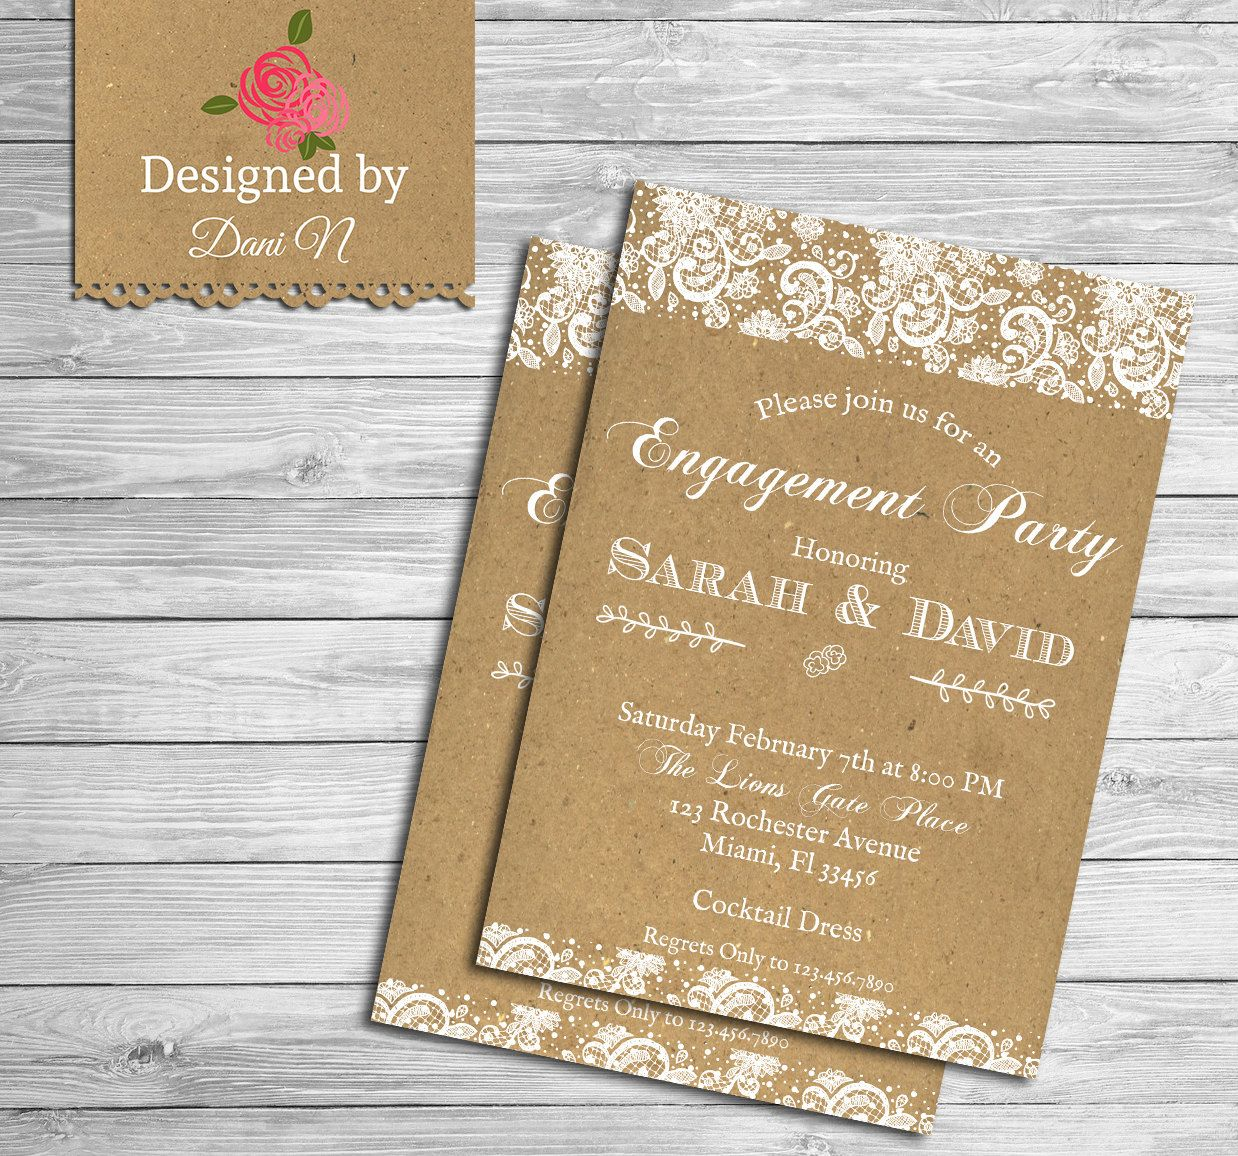 New to DesignedbyDaniN on Etsy: Engagement party invitation lace ...